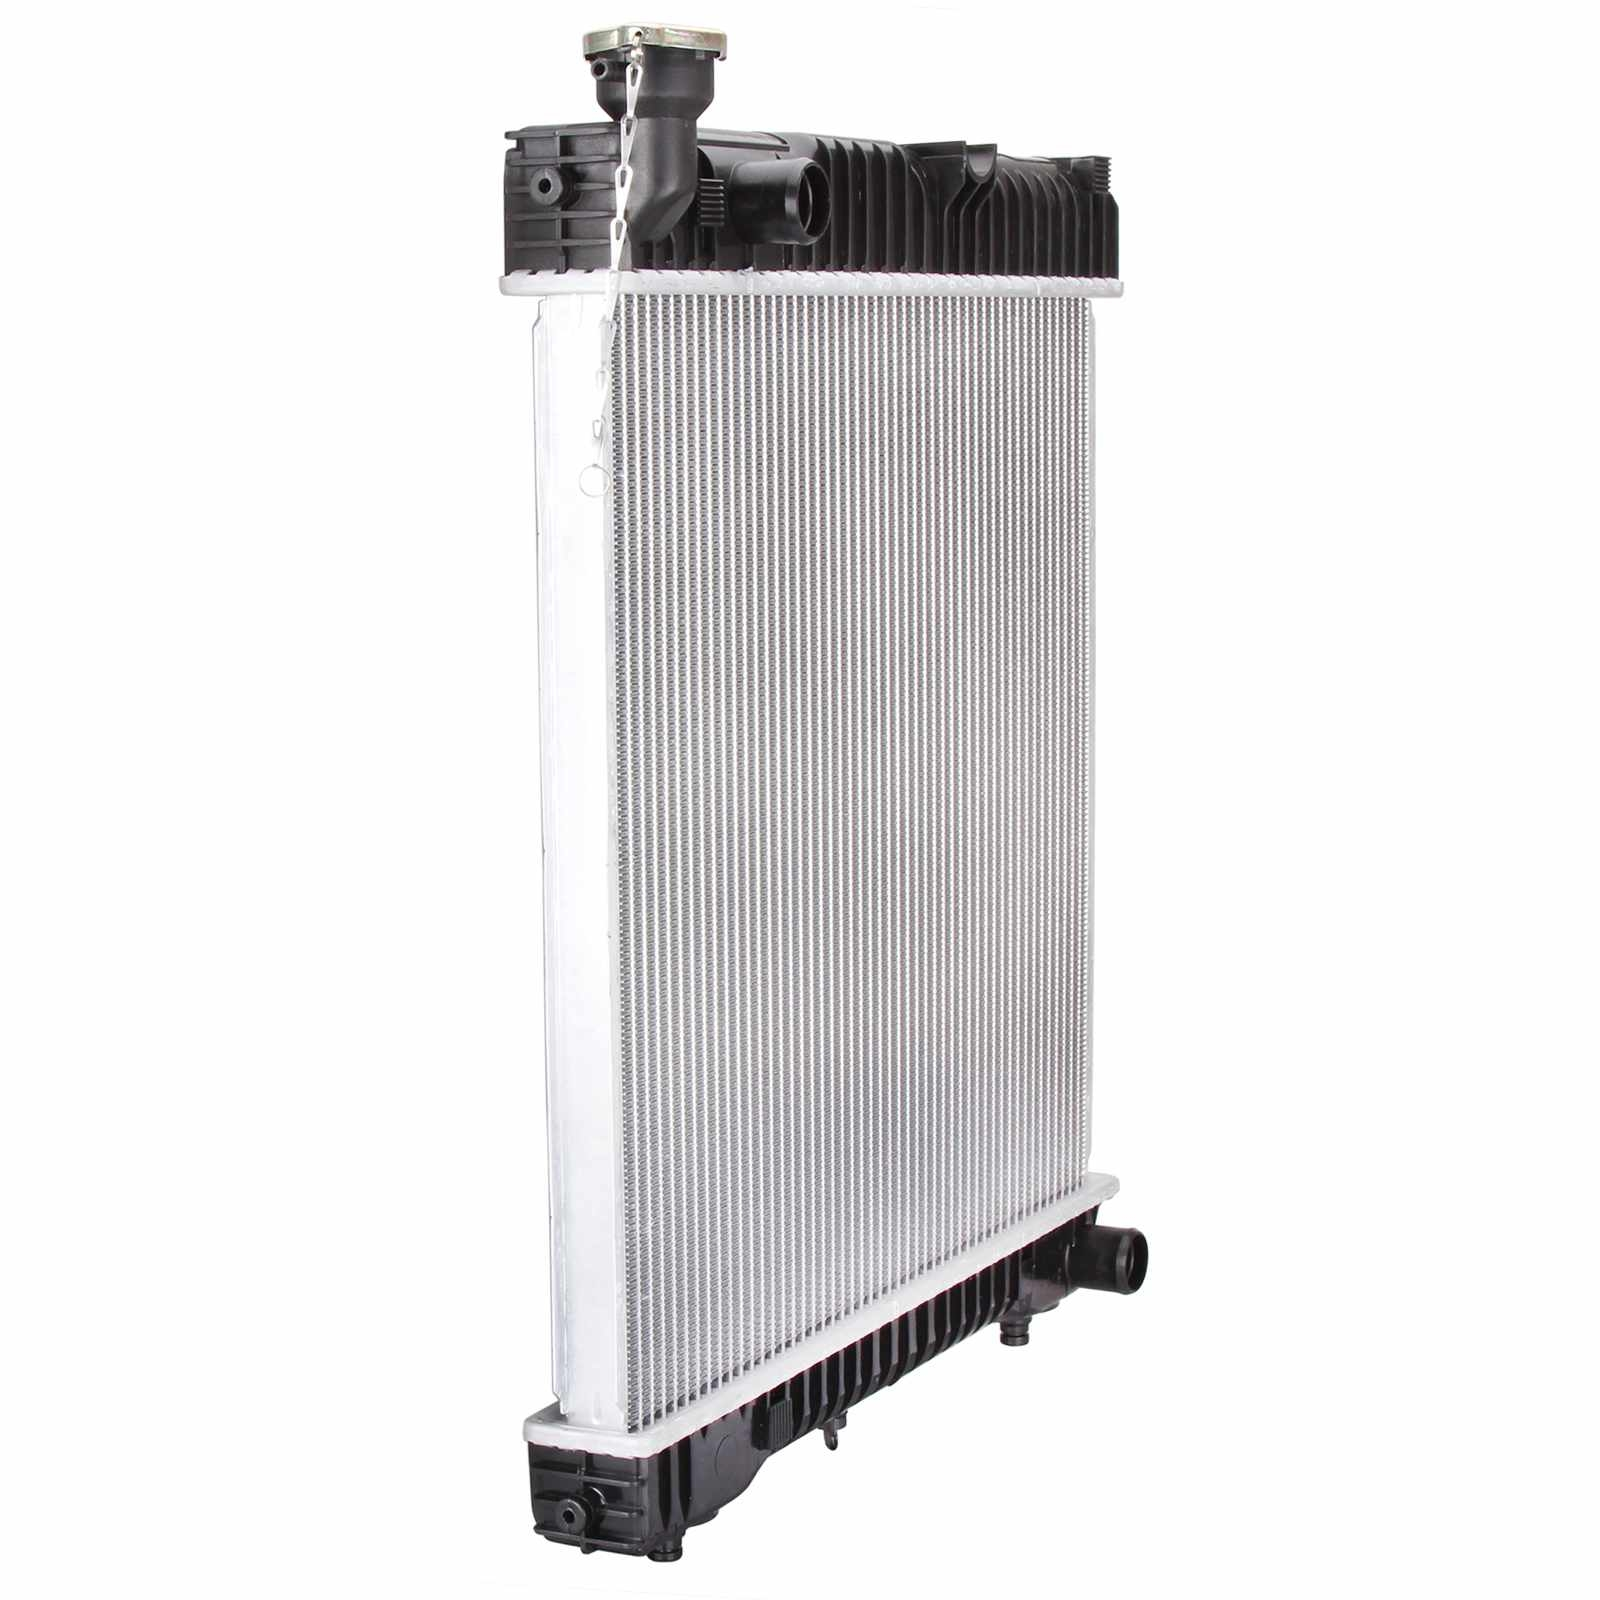 Dromedary Radiator For  Mercedes Benz T1 Bus Transporter 207-210 308 310 408 MT MERCEDES BENZ RADIATOR image7